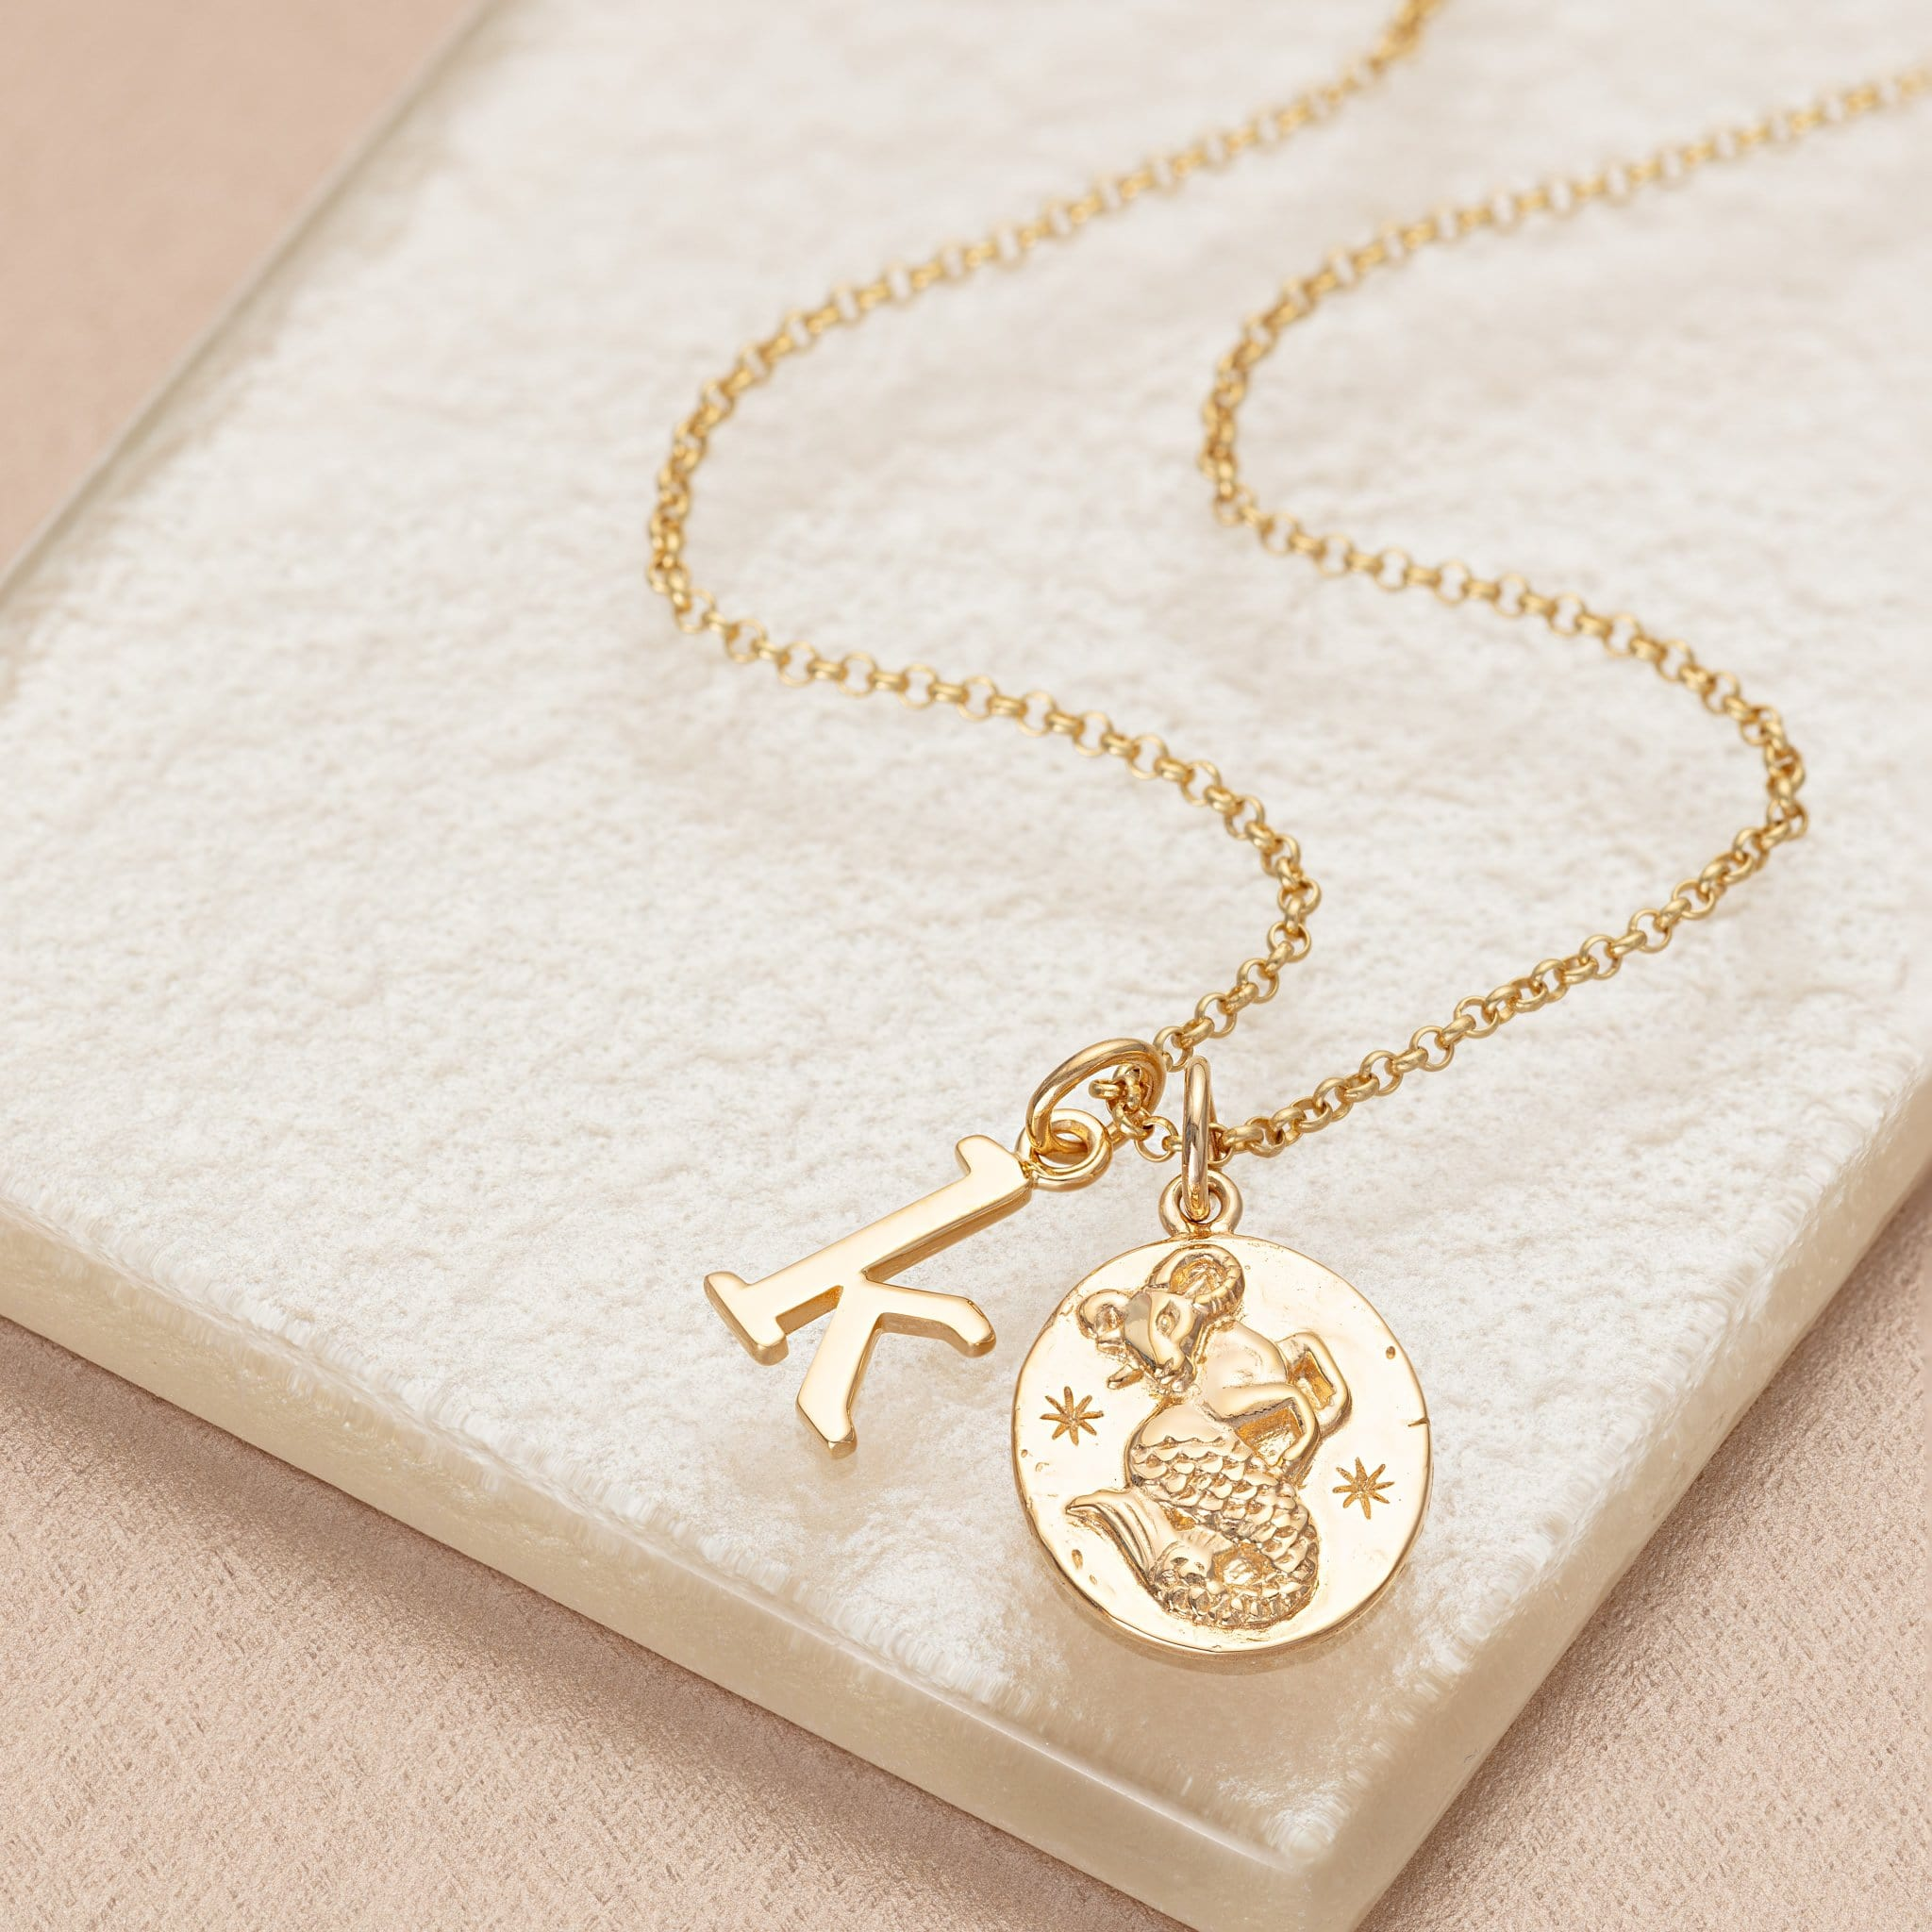 Personalised Gold Plated Capricorn Zodiac Necklace - Lily Charmed